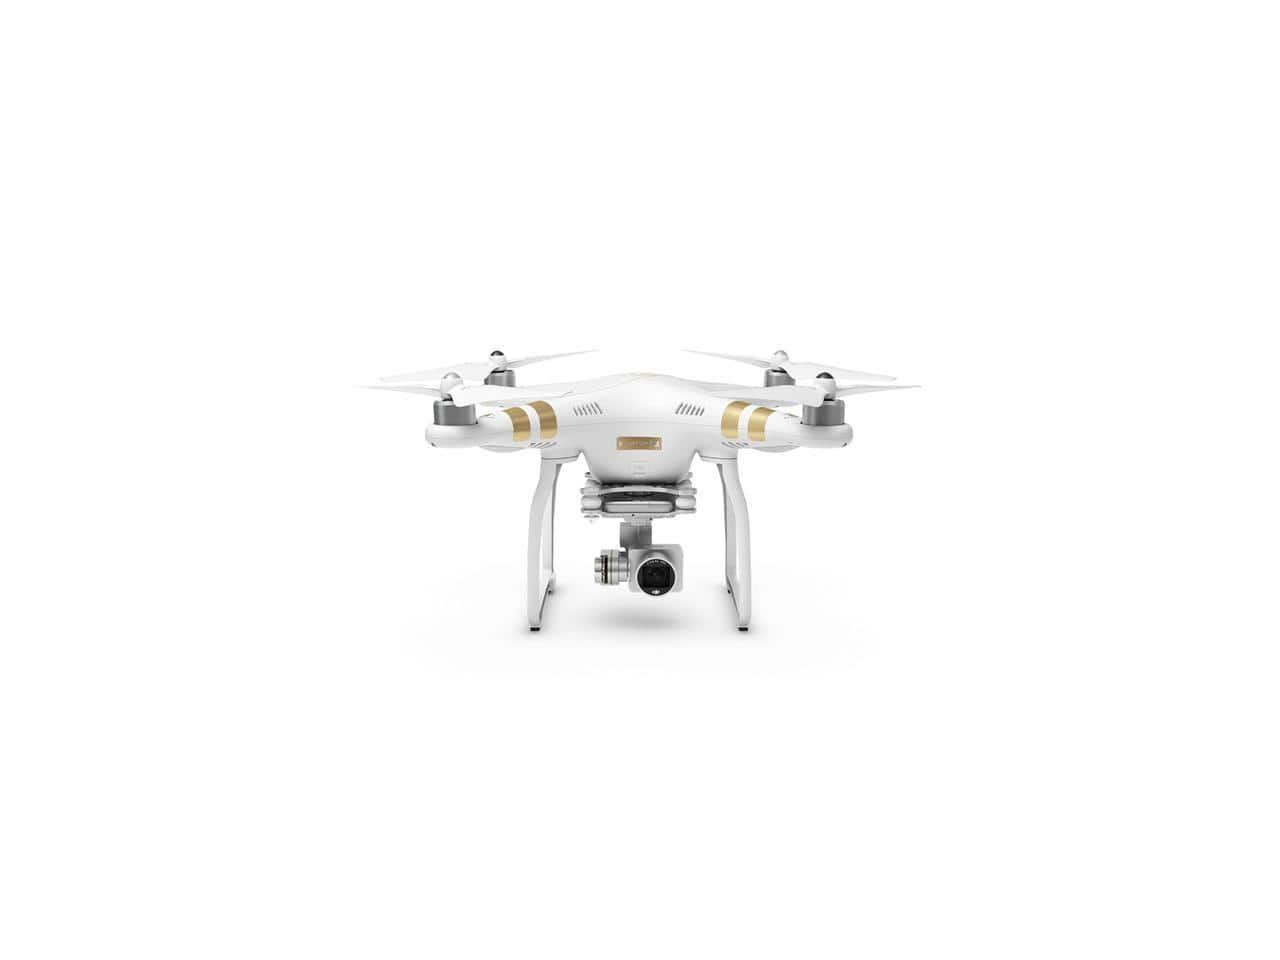 DJI Phantom 3 SE Quadcopter Drone with 4K Video Camera and 3-Axis Gimbal (DJI Certified Refurbish) for $399.00 + Free Ship @ Newegg